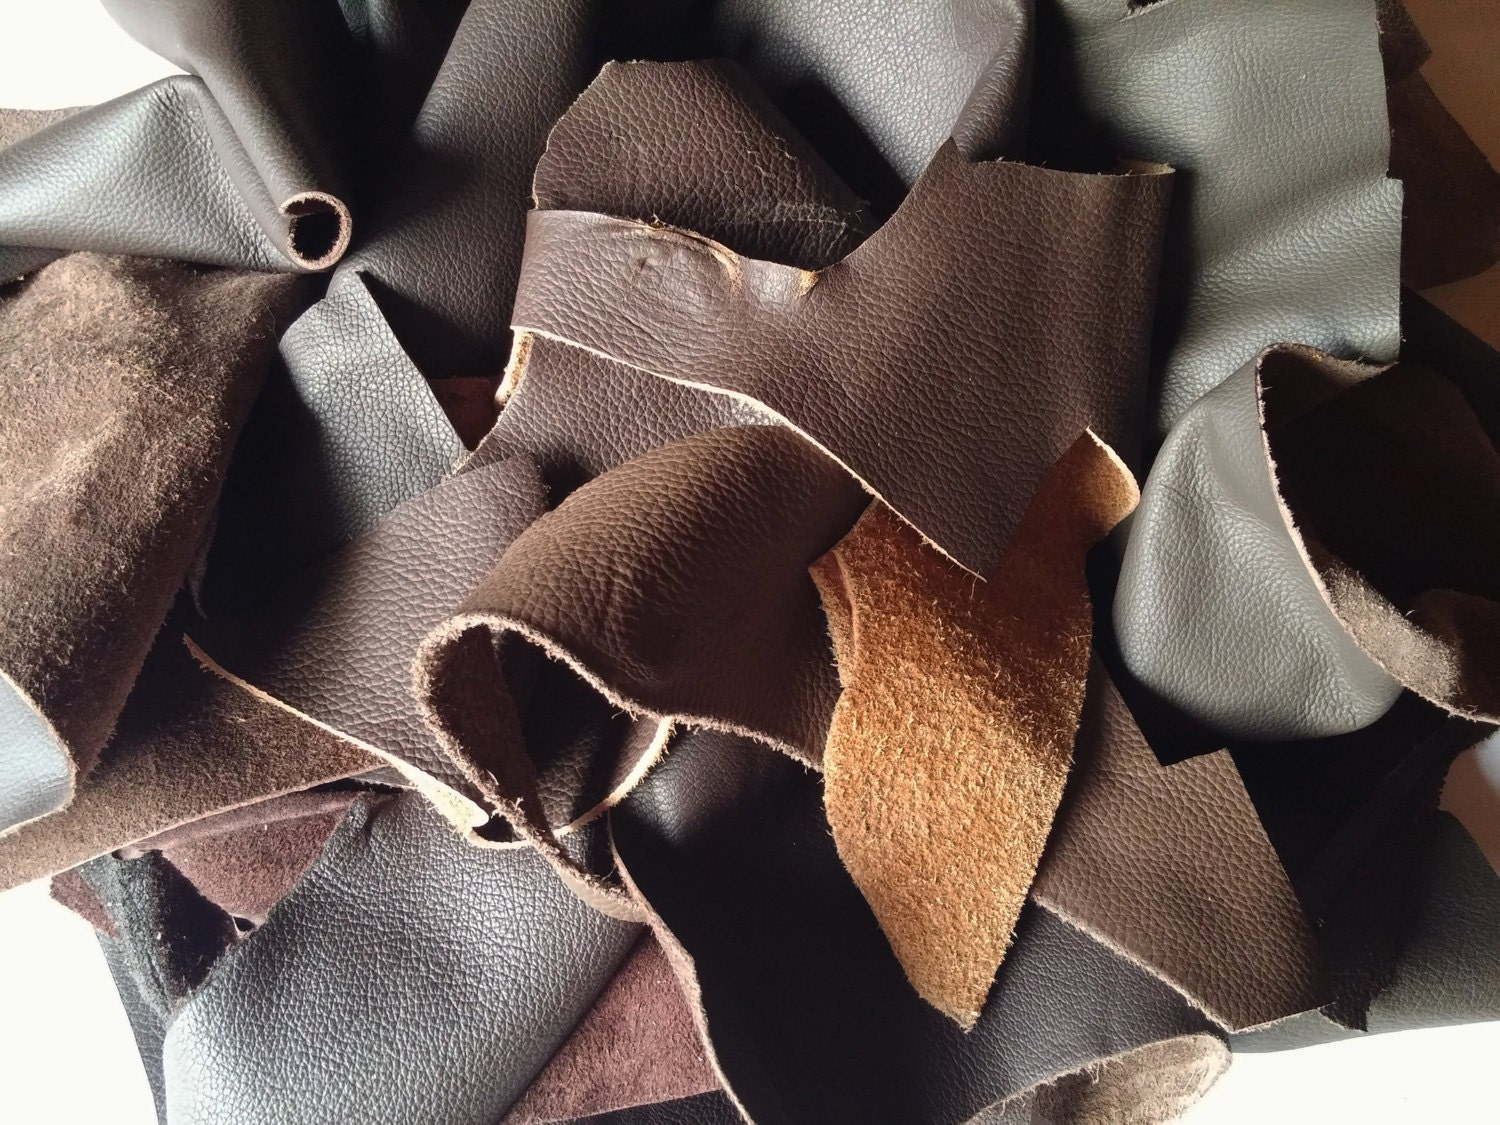 Leather scraps for crafts -  9 79